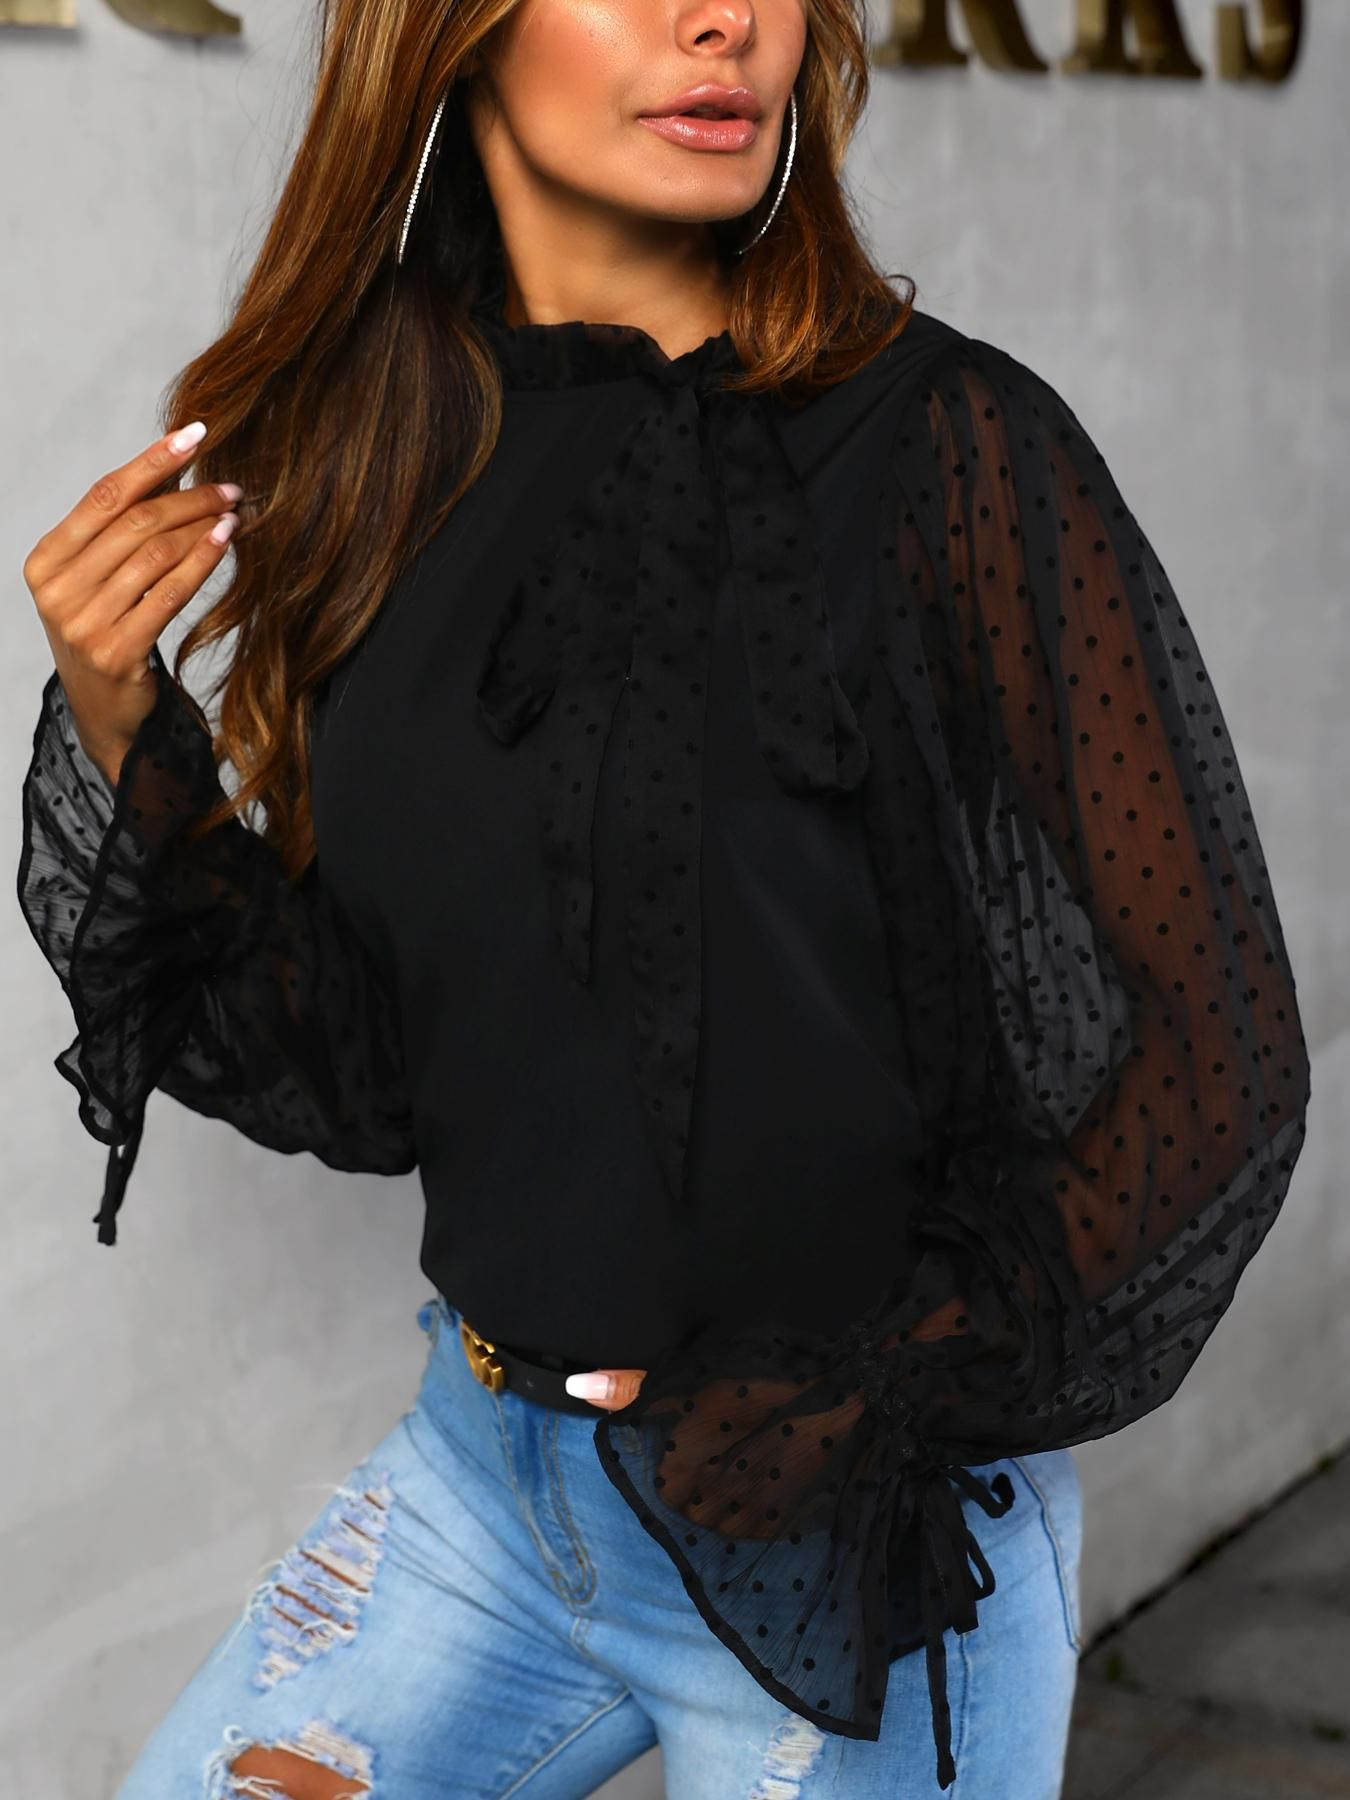 a213c16f07 ivrose / Dot Sheer Mesh Insert Bowknot Blouse in 2019 | Clothes ...